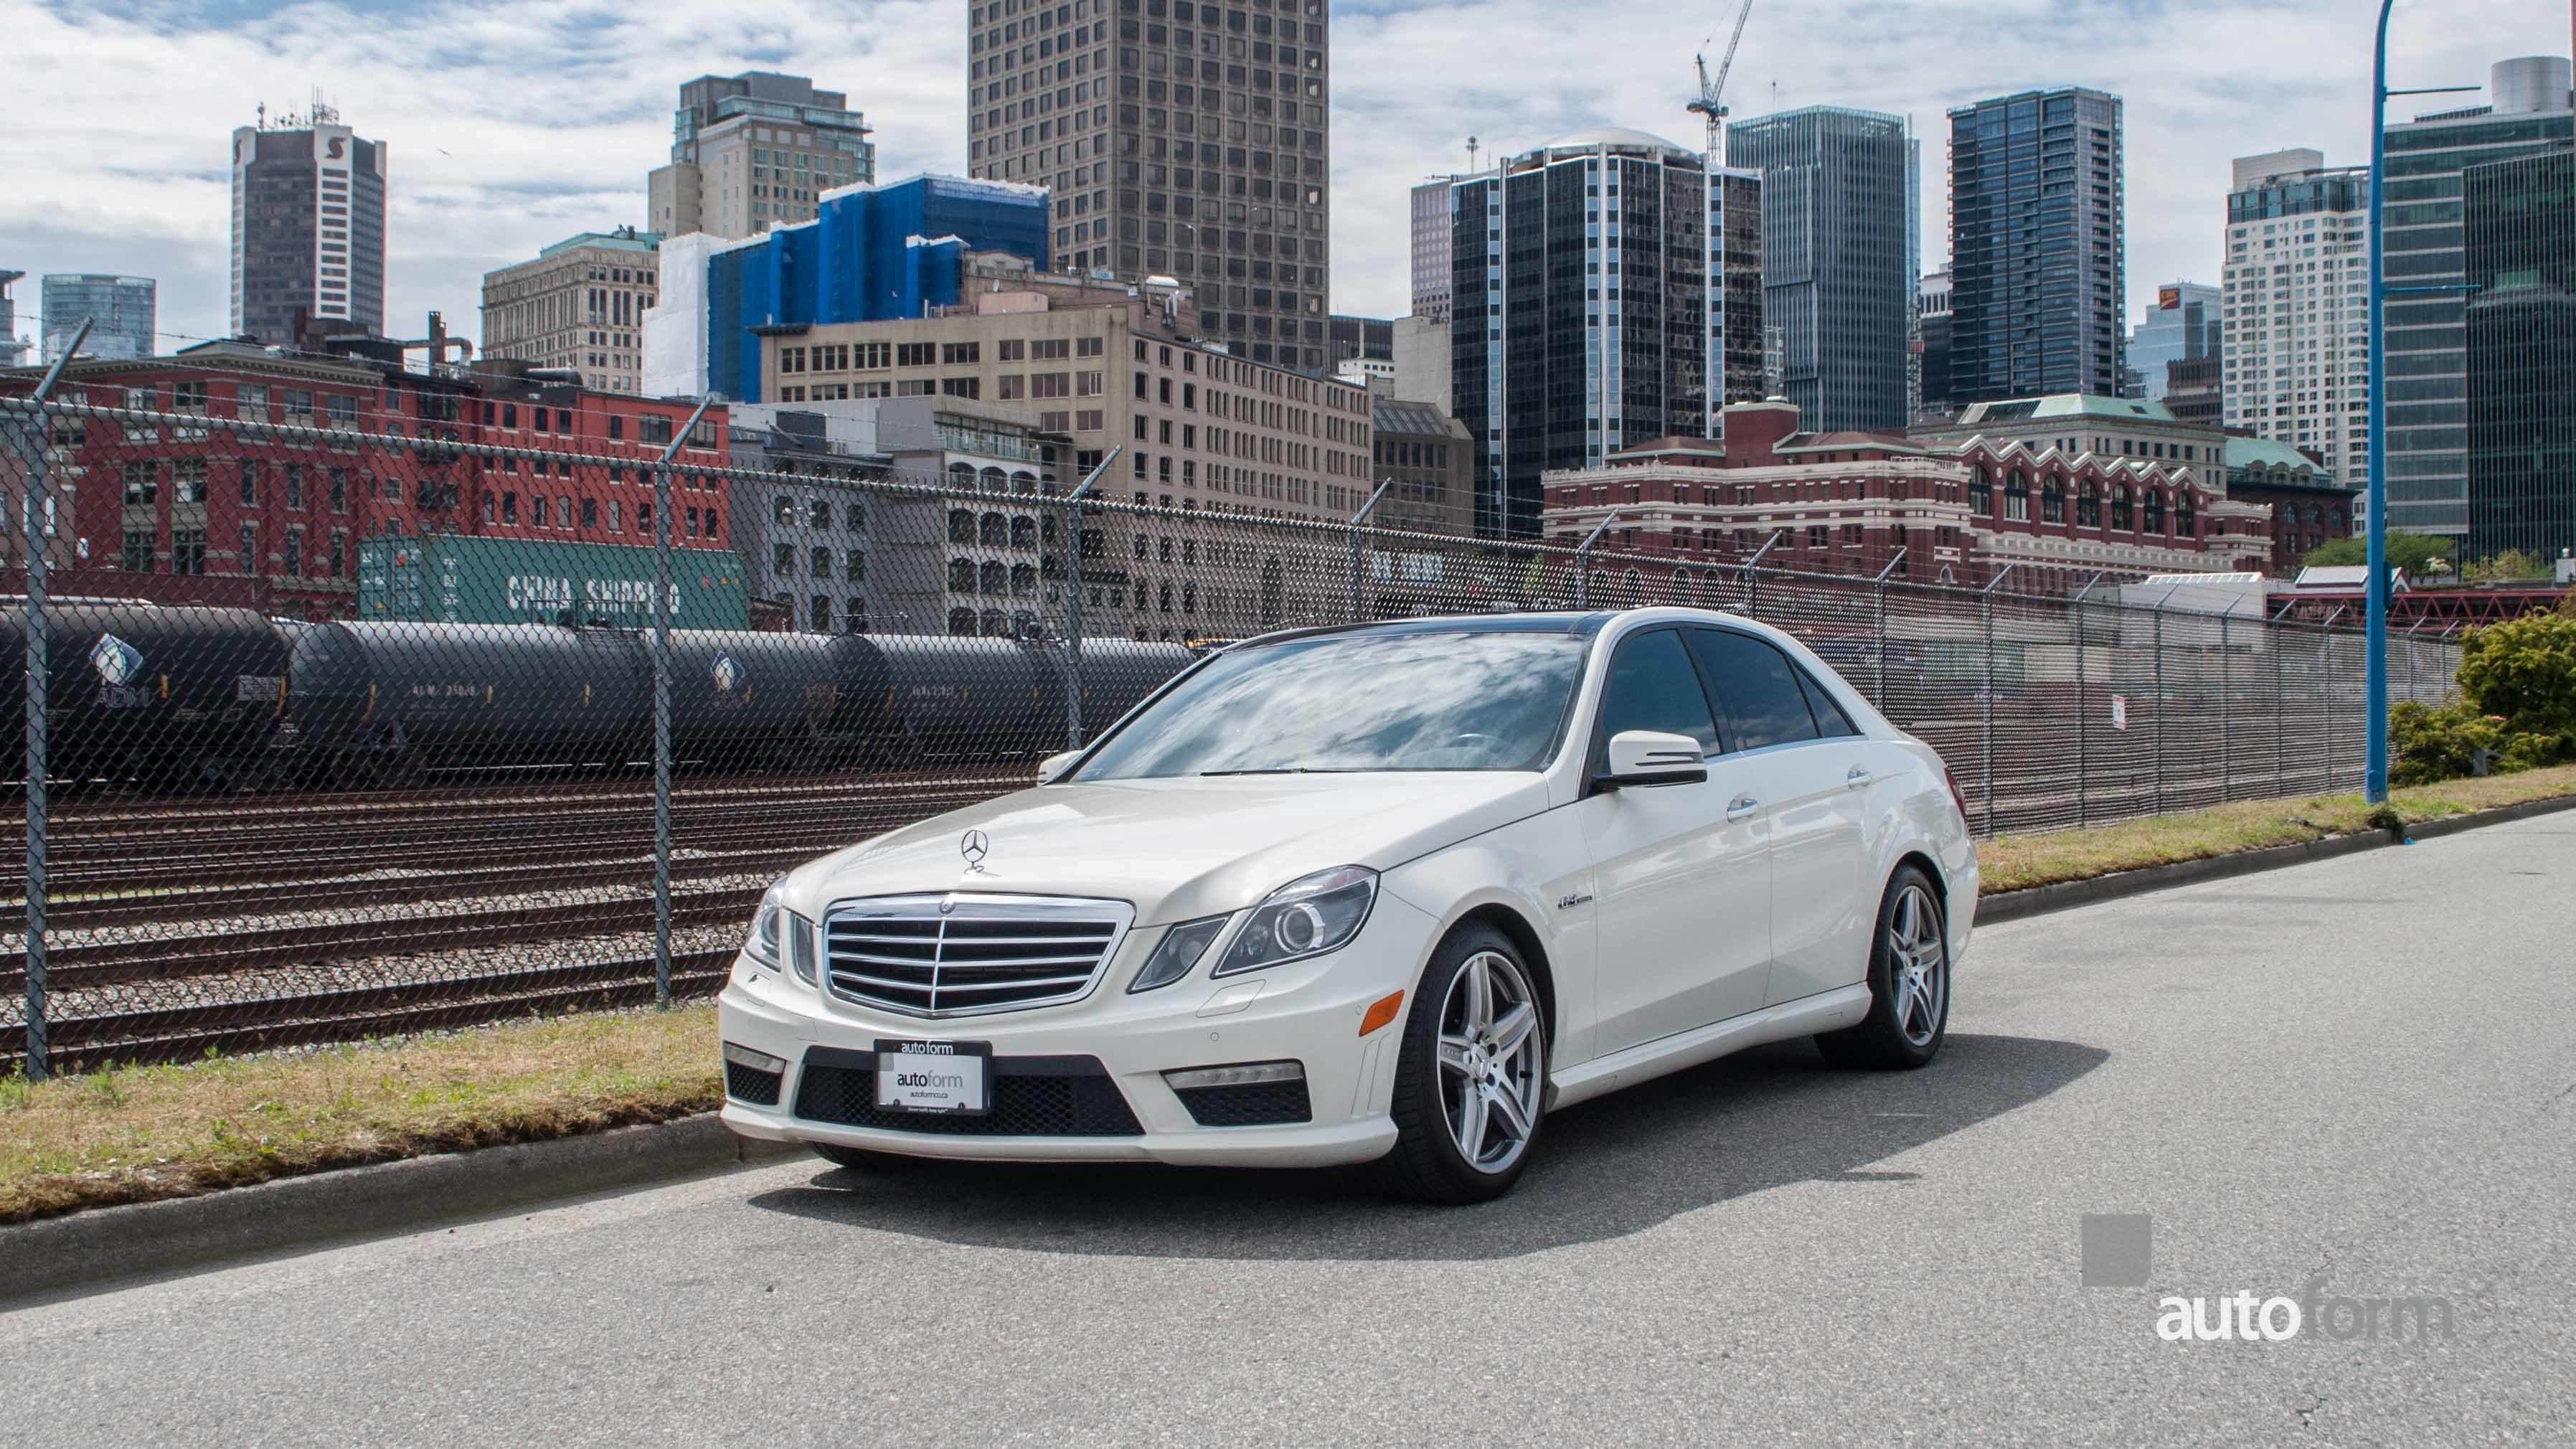 mercedes benz los incentives finance gt price offers amg for sale coupe lease gts angeles new dtw class ca dr